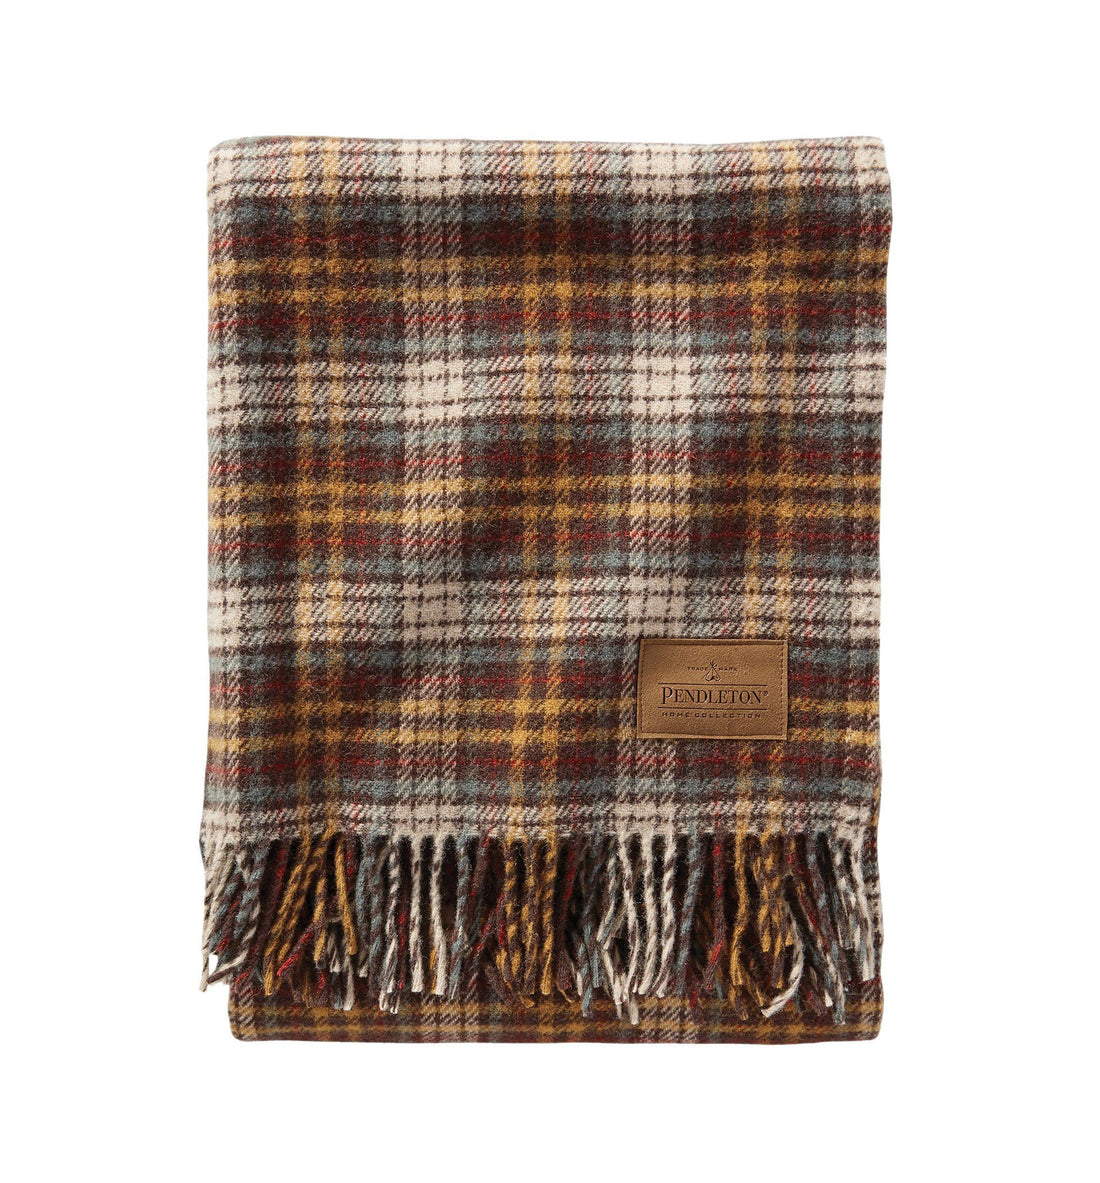 Pendleton Woolen Mills Carry Along Motor Robe Blanket - Whiskey Creek - Outdoor Living/Travel - Iron and Resin